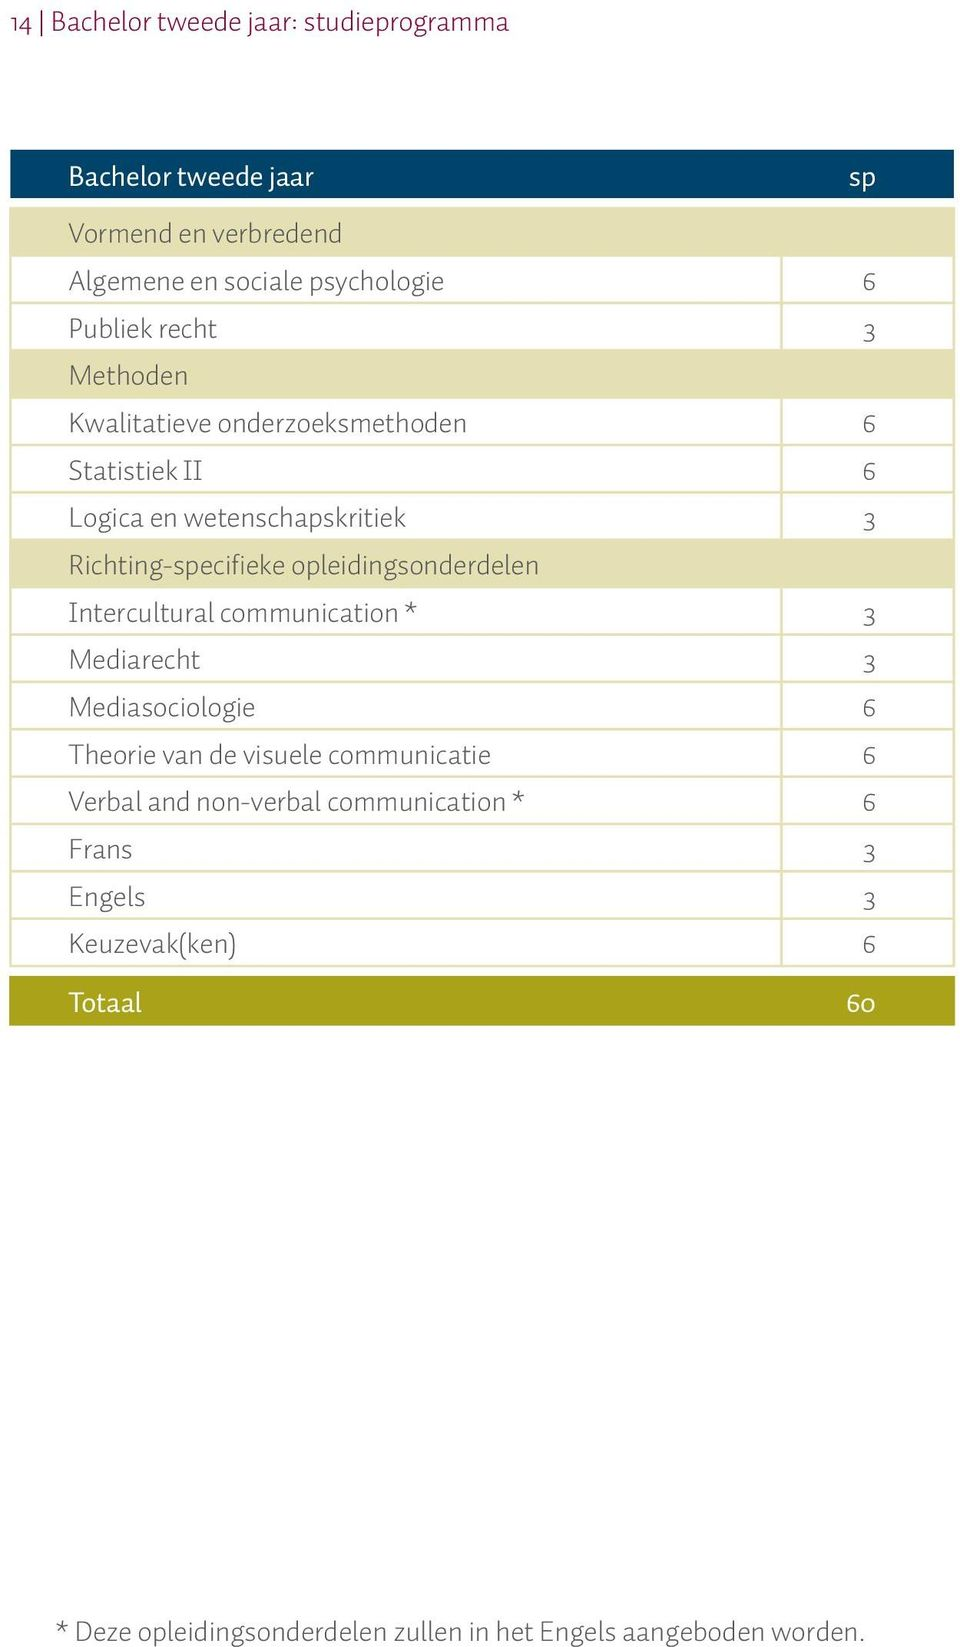 opleidingsonderdelen Intercultural communication * 3 Mediarecht 3 Mediasociologie 6 Theorie van de visuele communicatie 6 Verbal